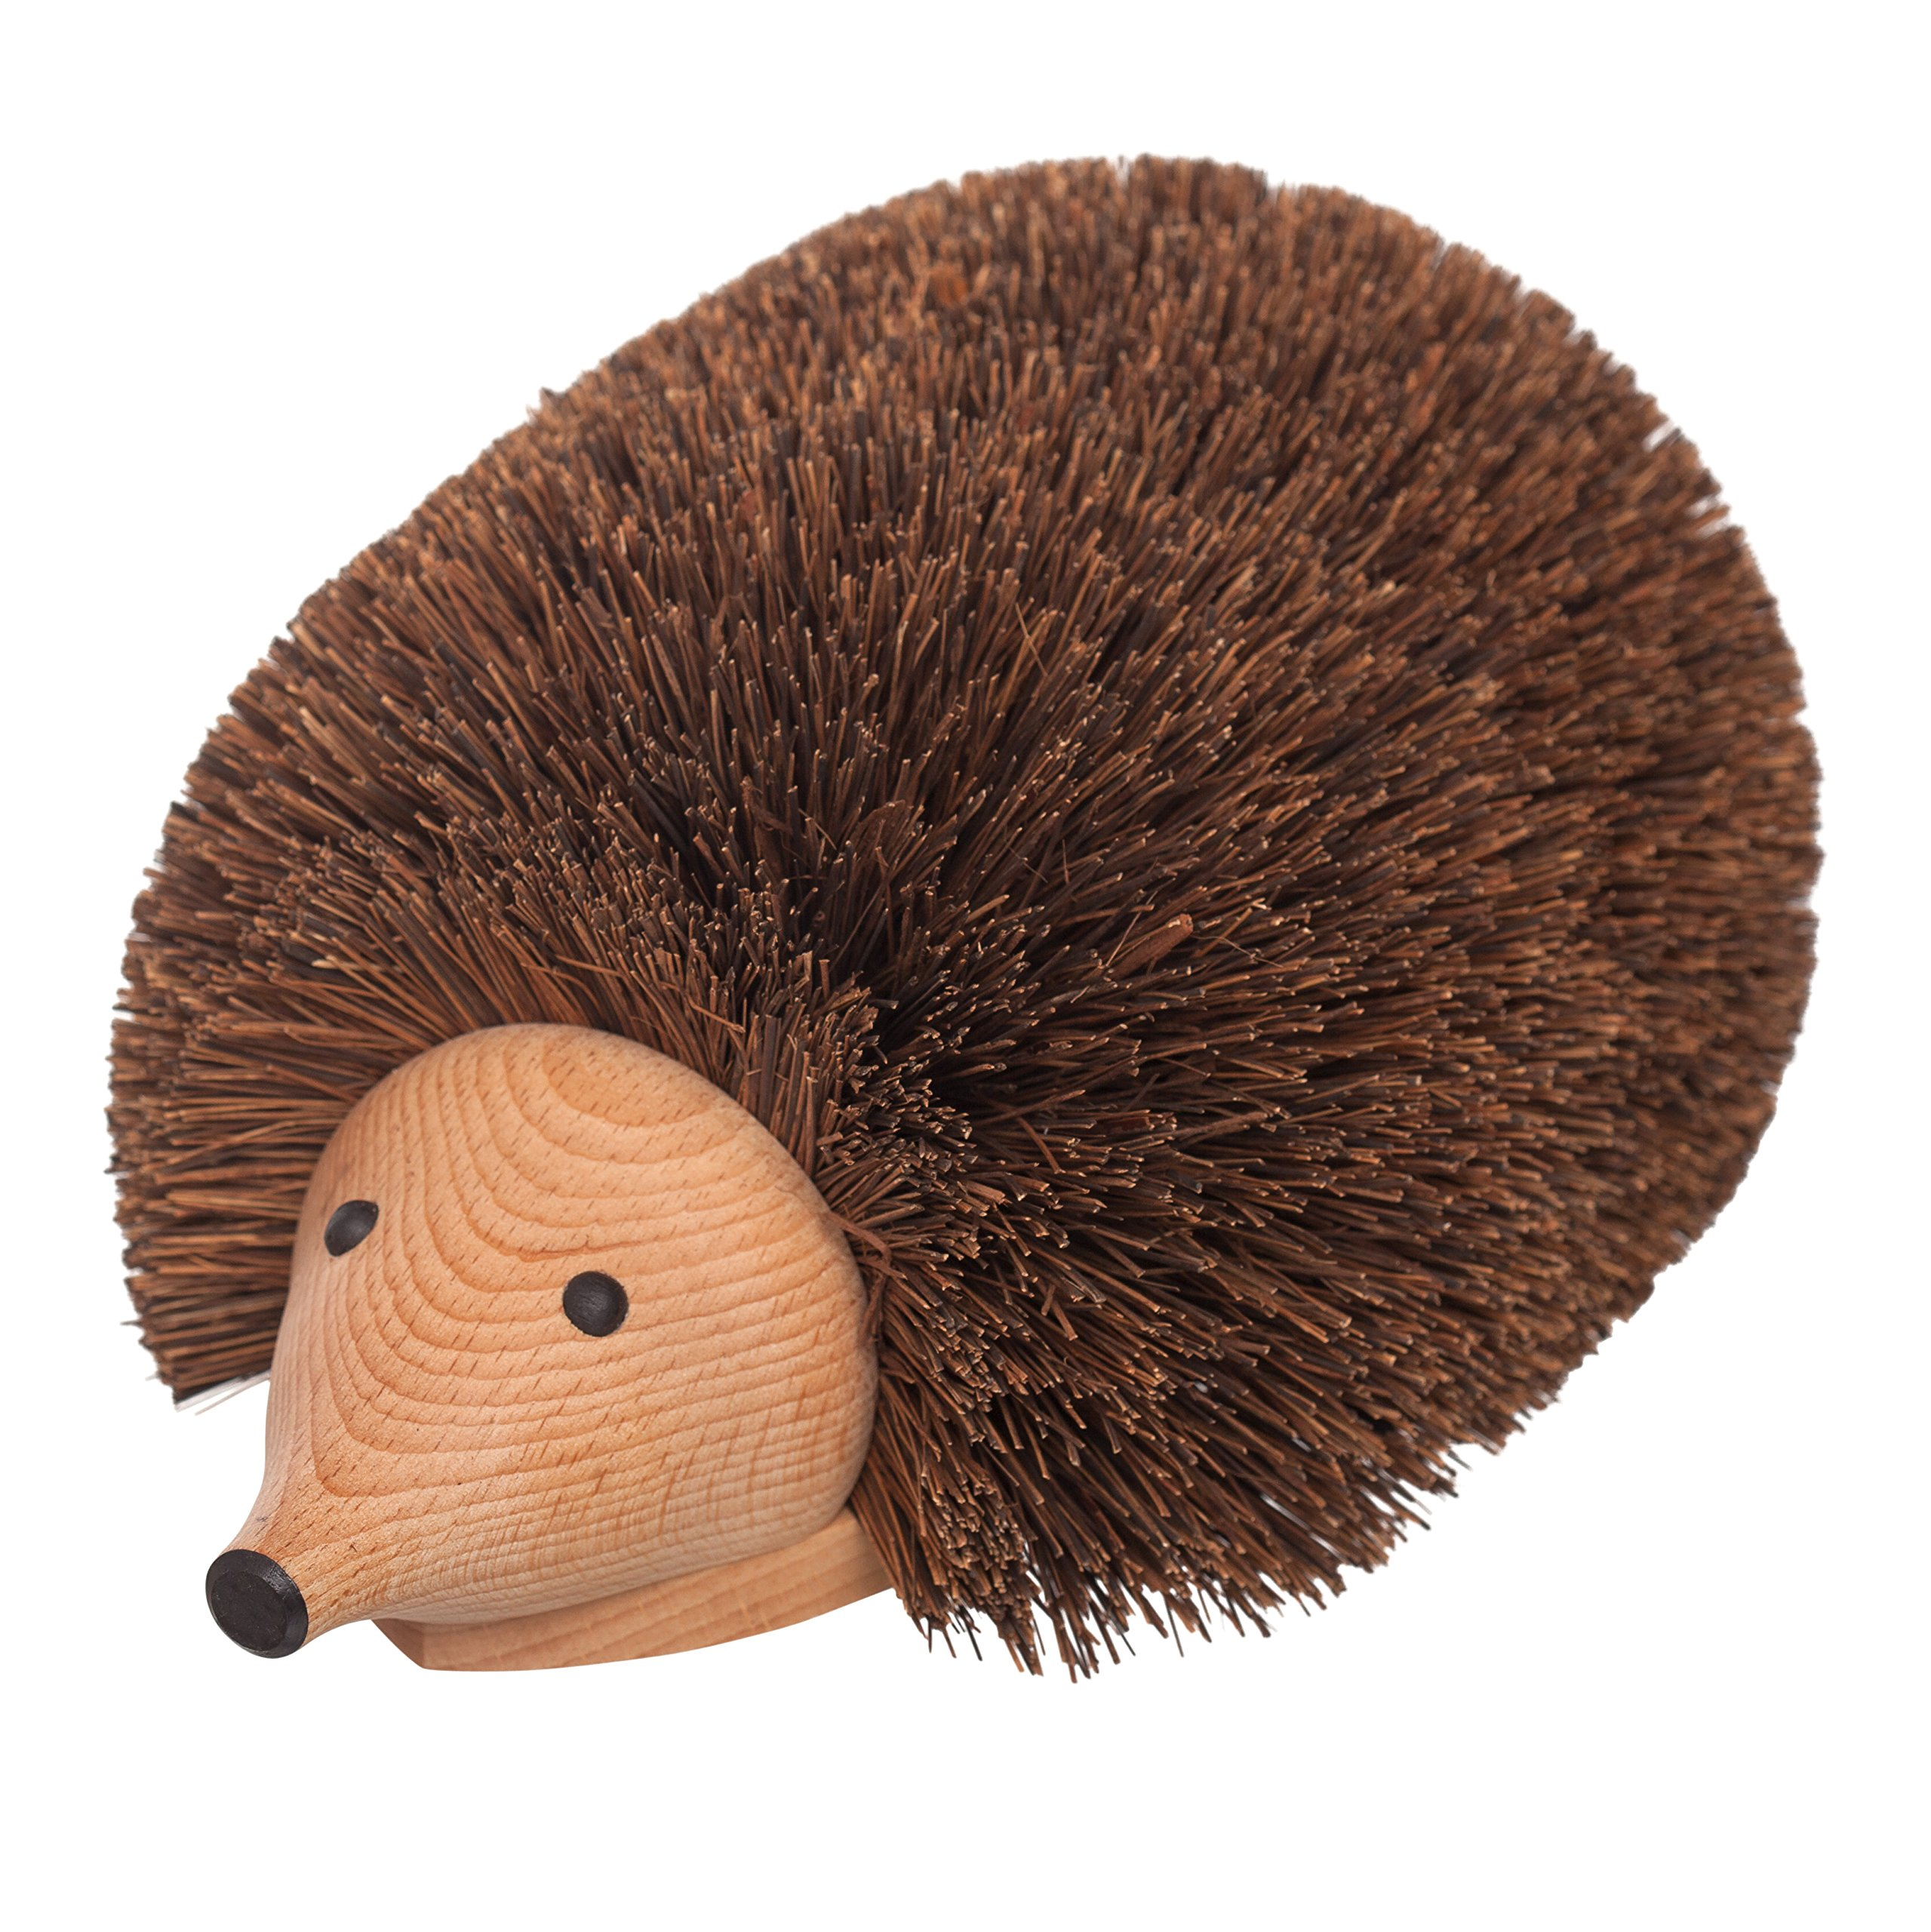 REDECKER Bassine Fiber Shoe Cleaning Hedgehog, 11-3/4'', Sturdy Beechwood Base, Durable Natural Bristles, Decorative Design, Made in Germany